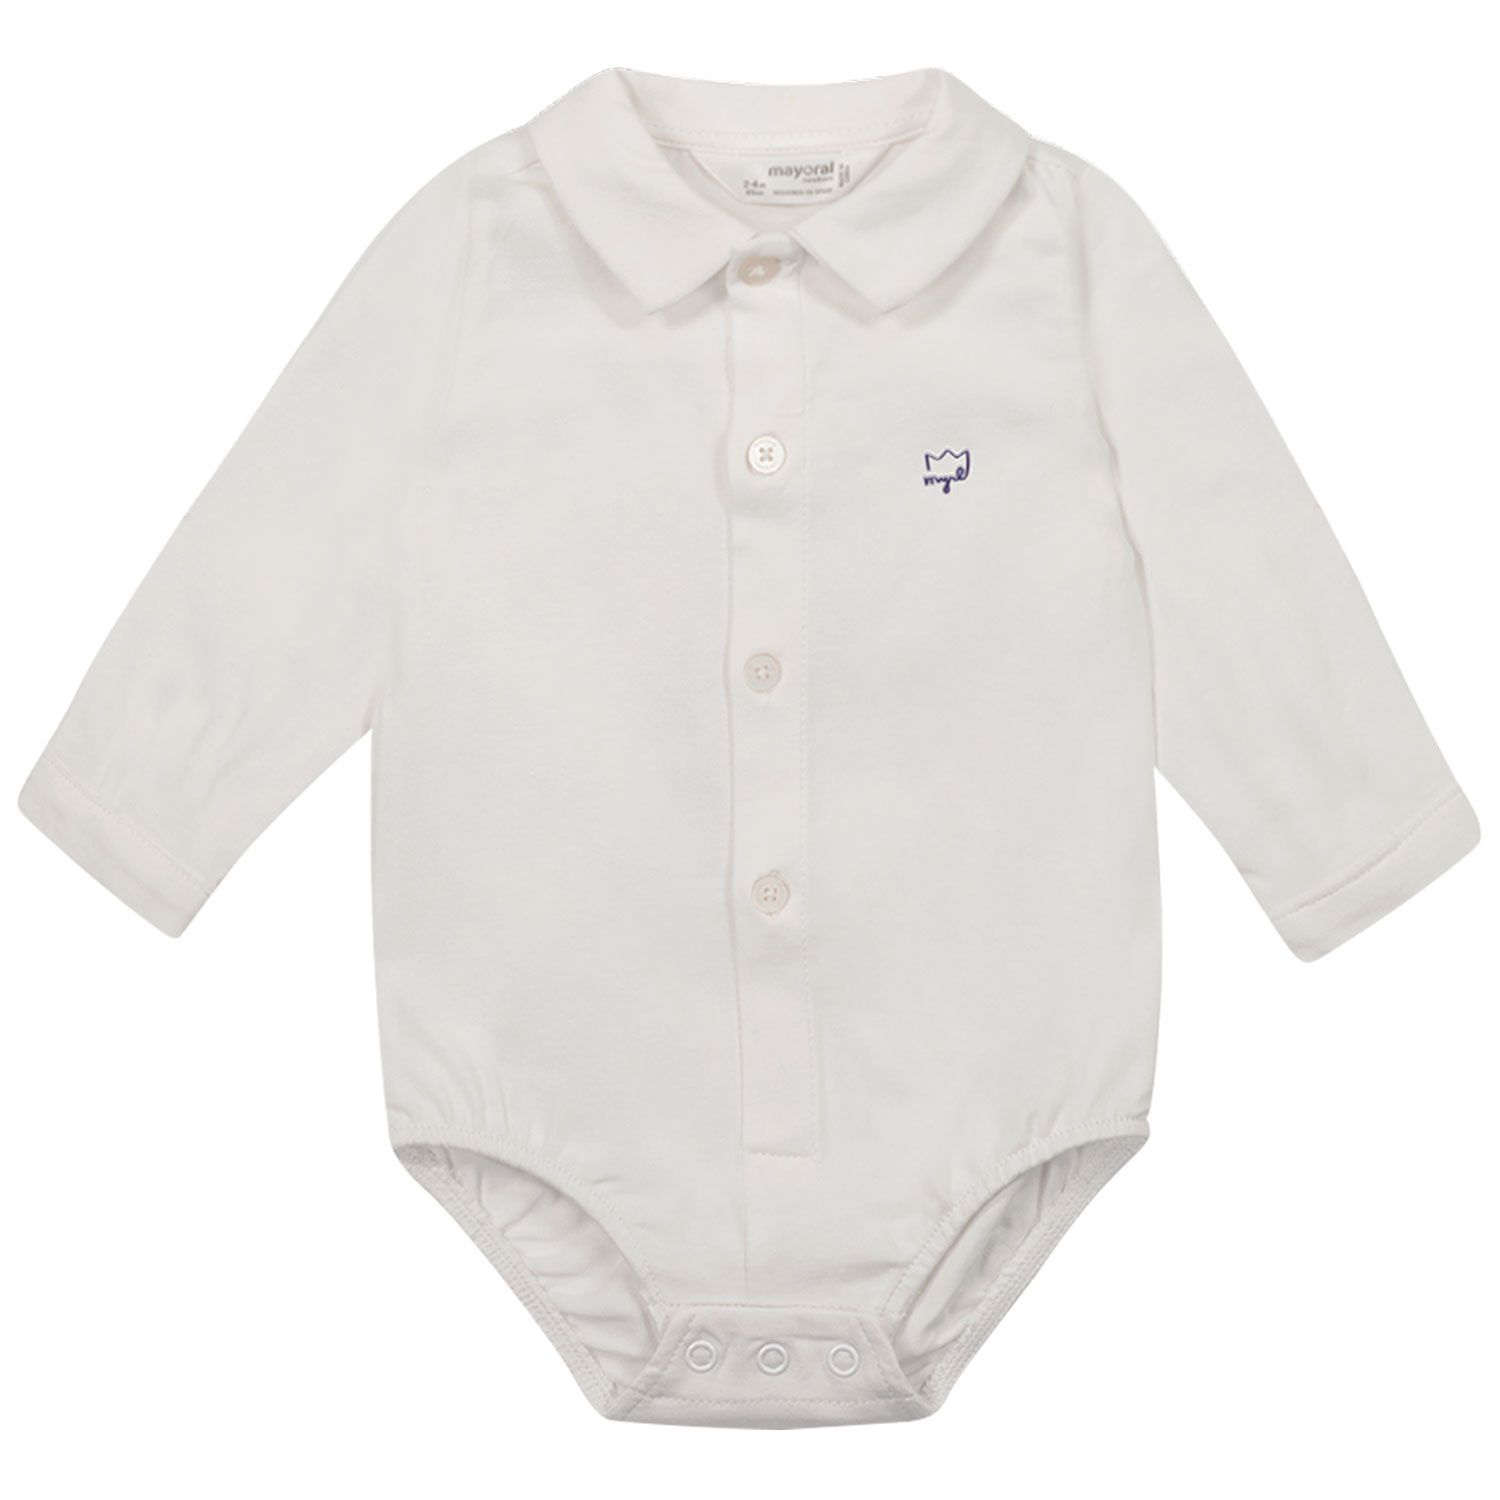 Picture of Mayoral 1702 rompersuit white